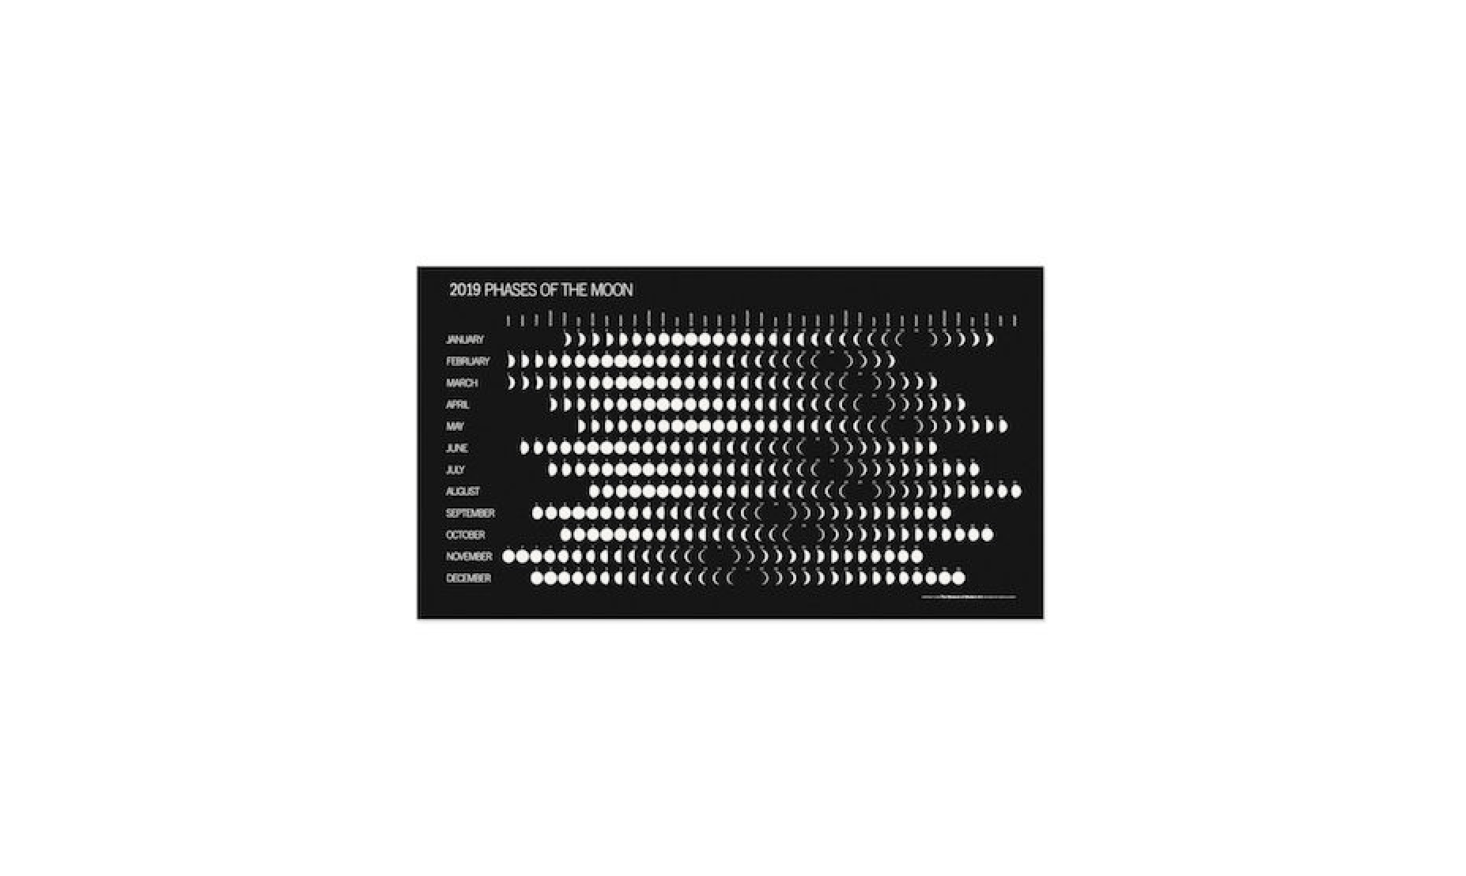 Printed in the US, a Phases of the Moon Calendar  is $8.95 from MoMA Design Store.